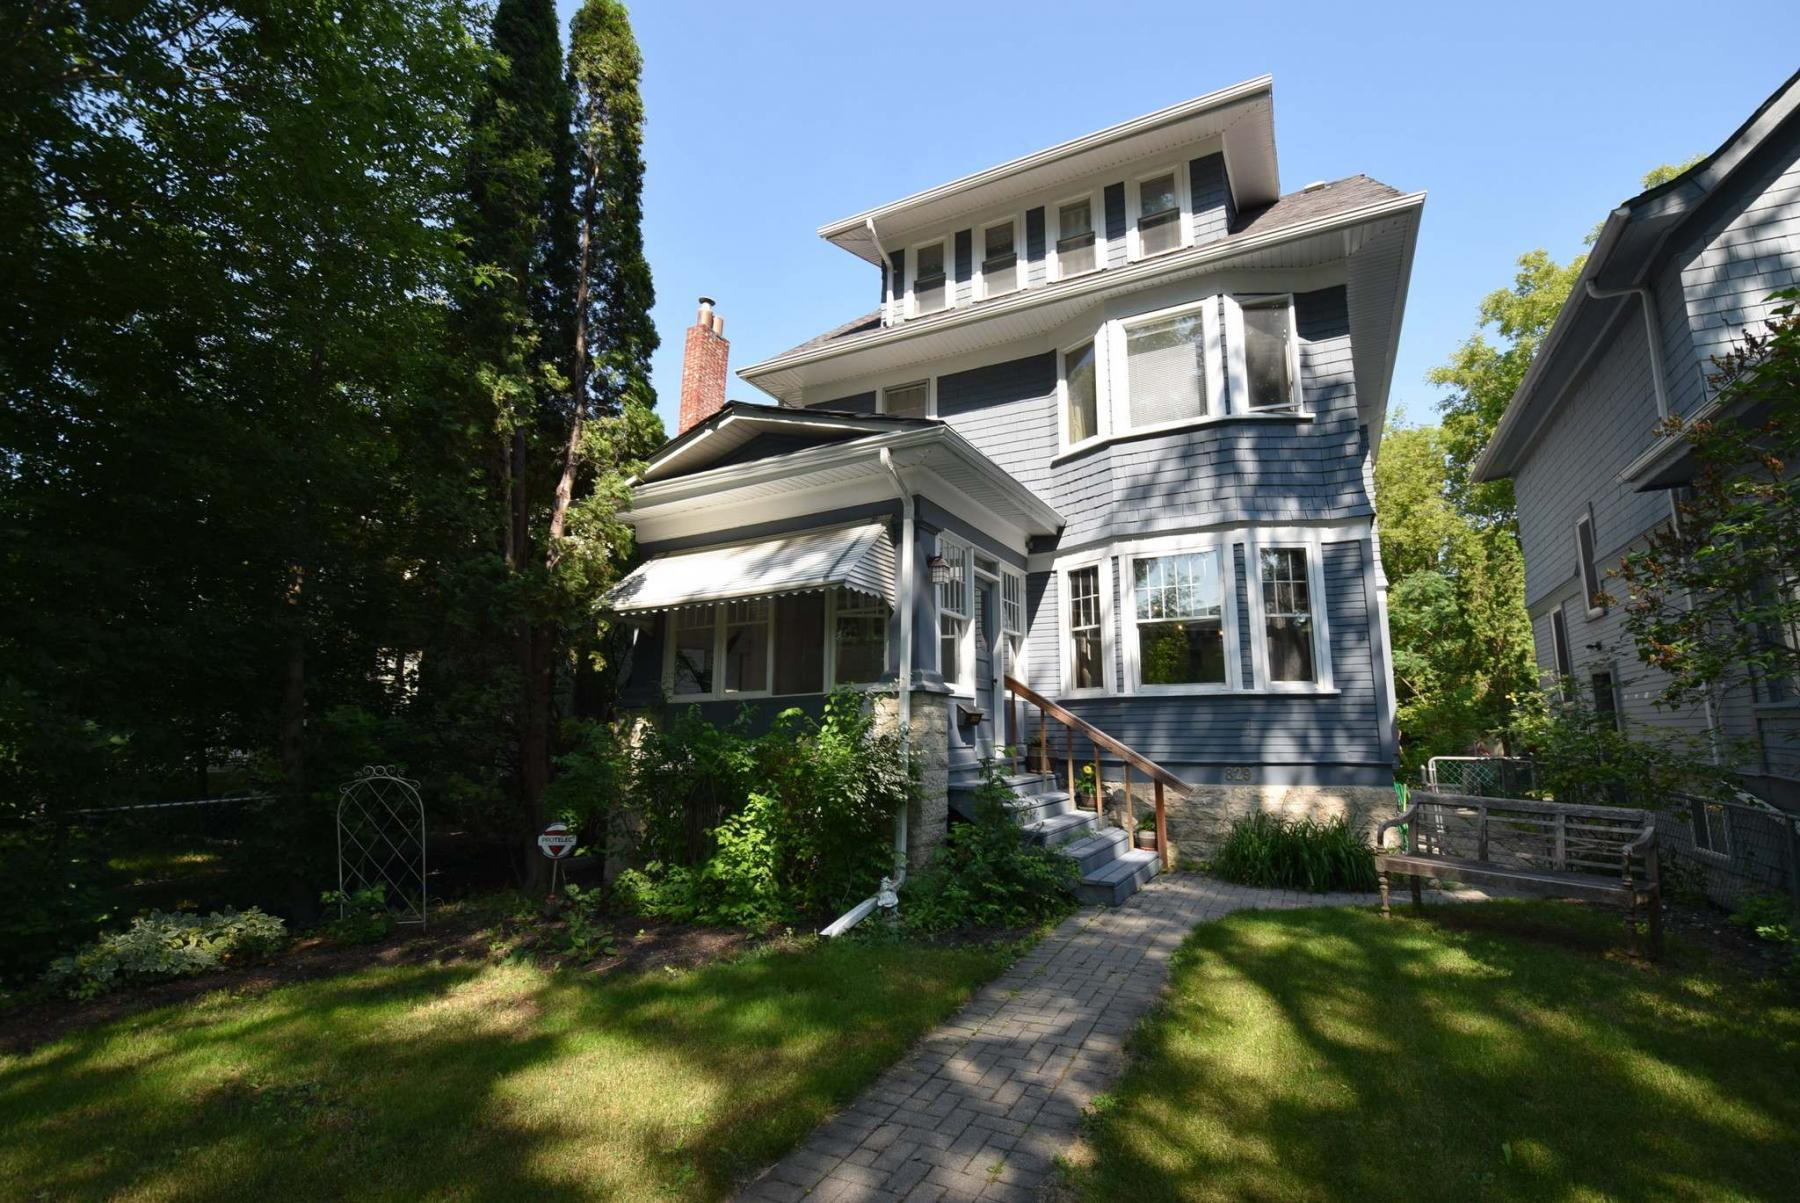 <p>TODD LEWYS / WINNIPEG FREE PRESS</p><p>Sitting on an oversized lot in Crescentwood, this updated 1912 home on McMillan Avenue delivers a getaway feel while being located in the heart of the city.</p>